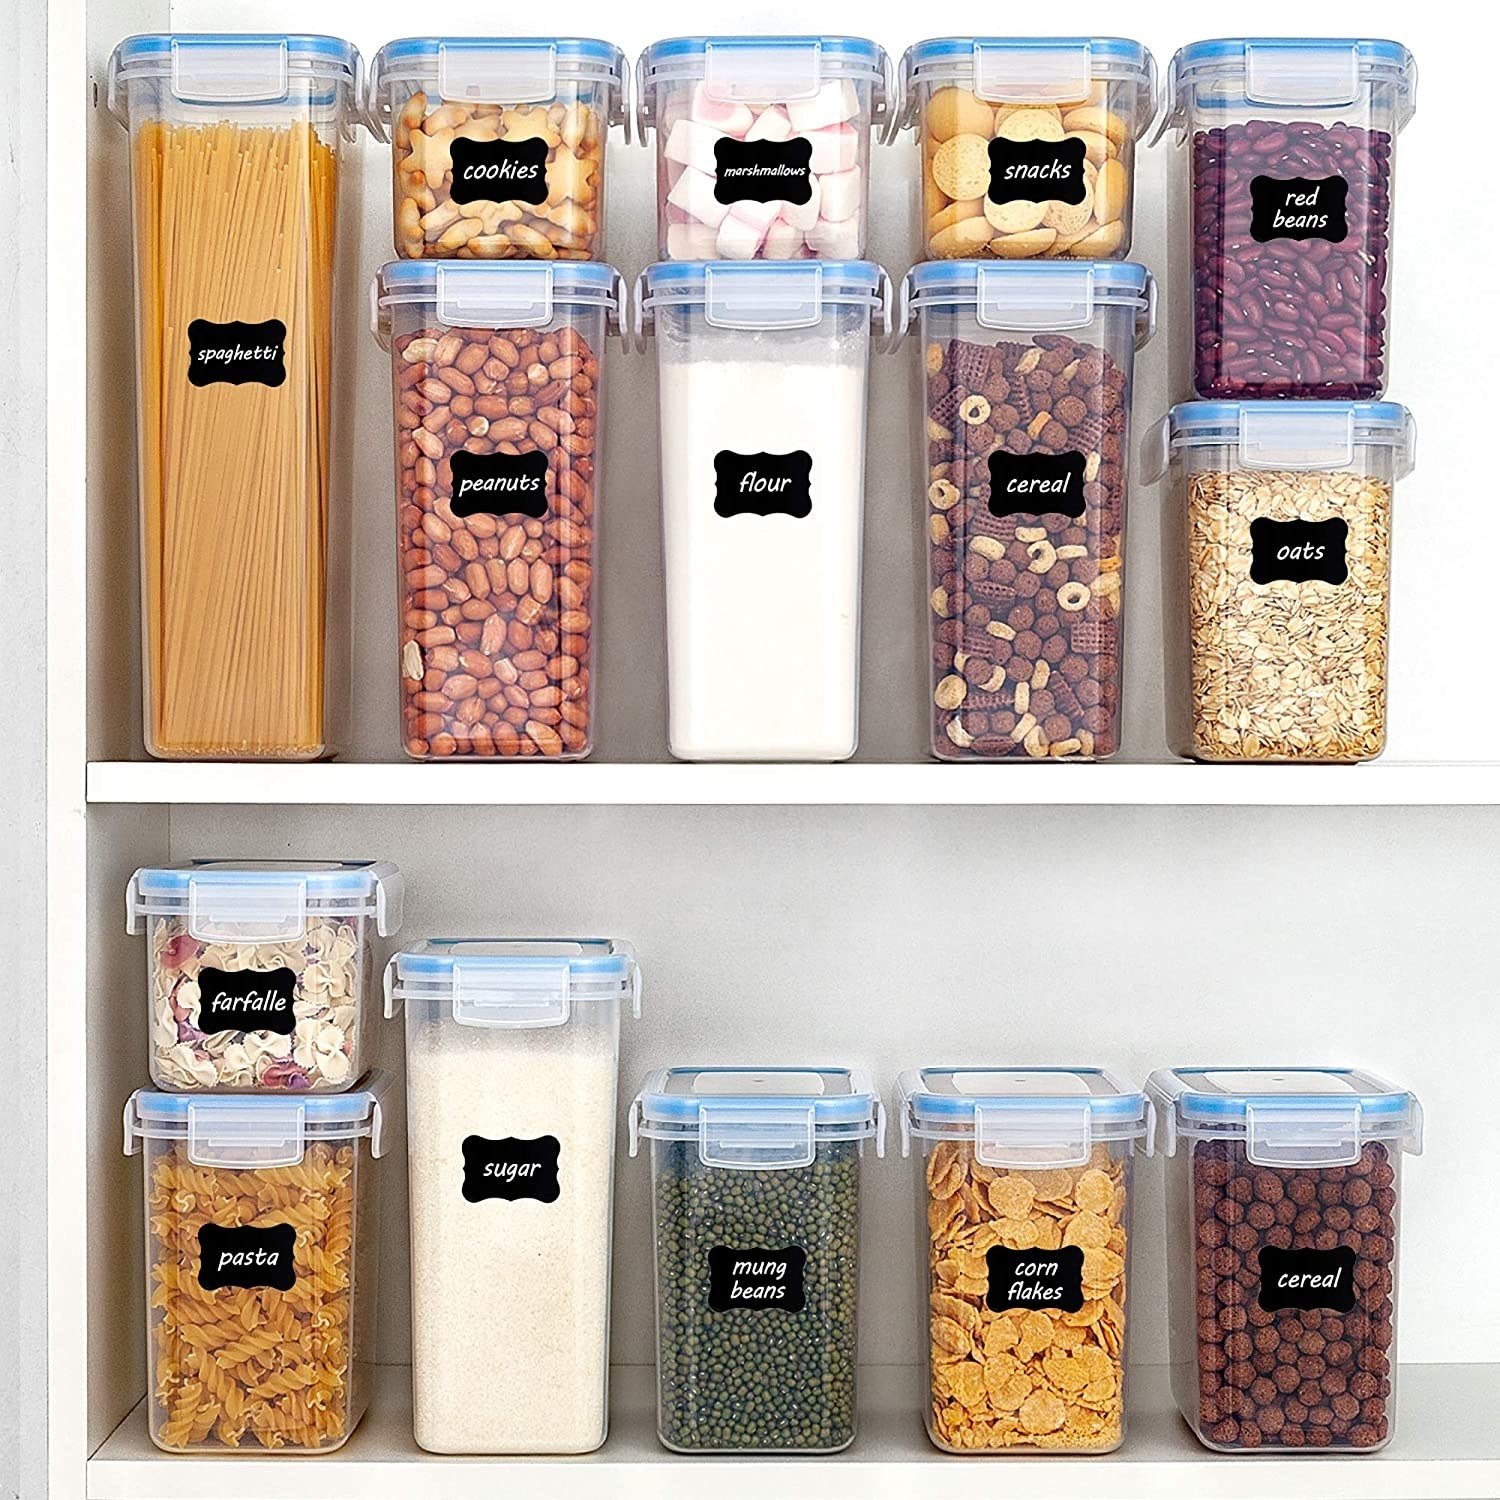 The full 15 piece Vtopmart Airtight Food Storage Containers Set being used to store different kinds of food